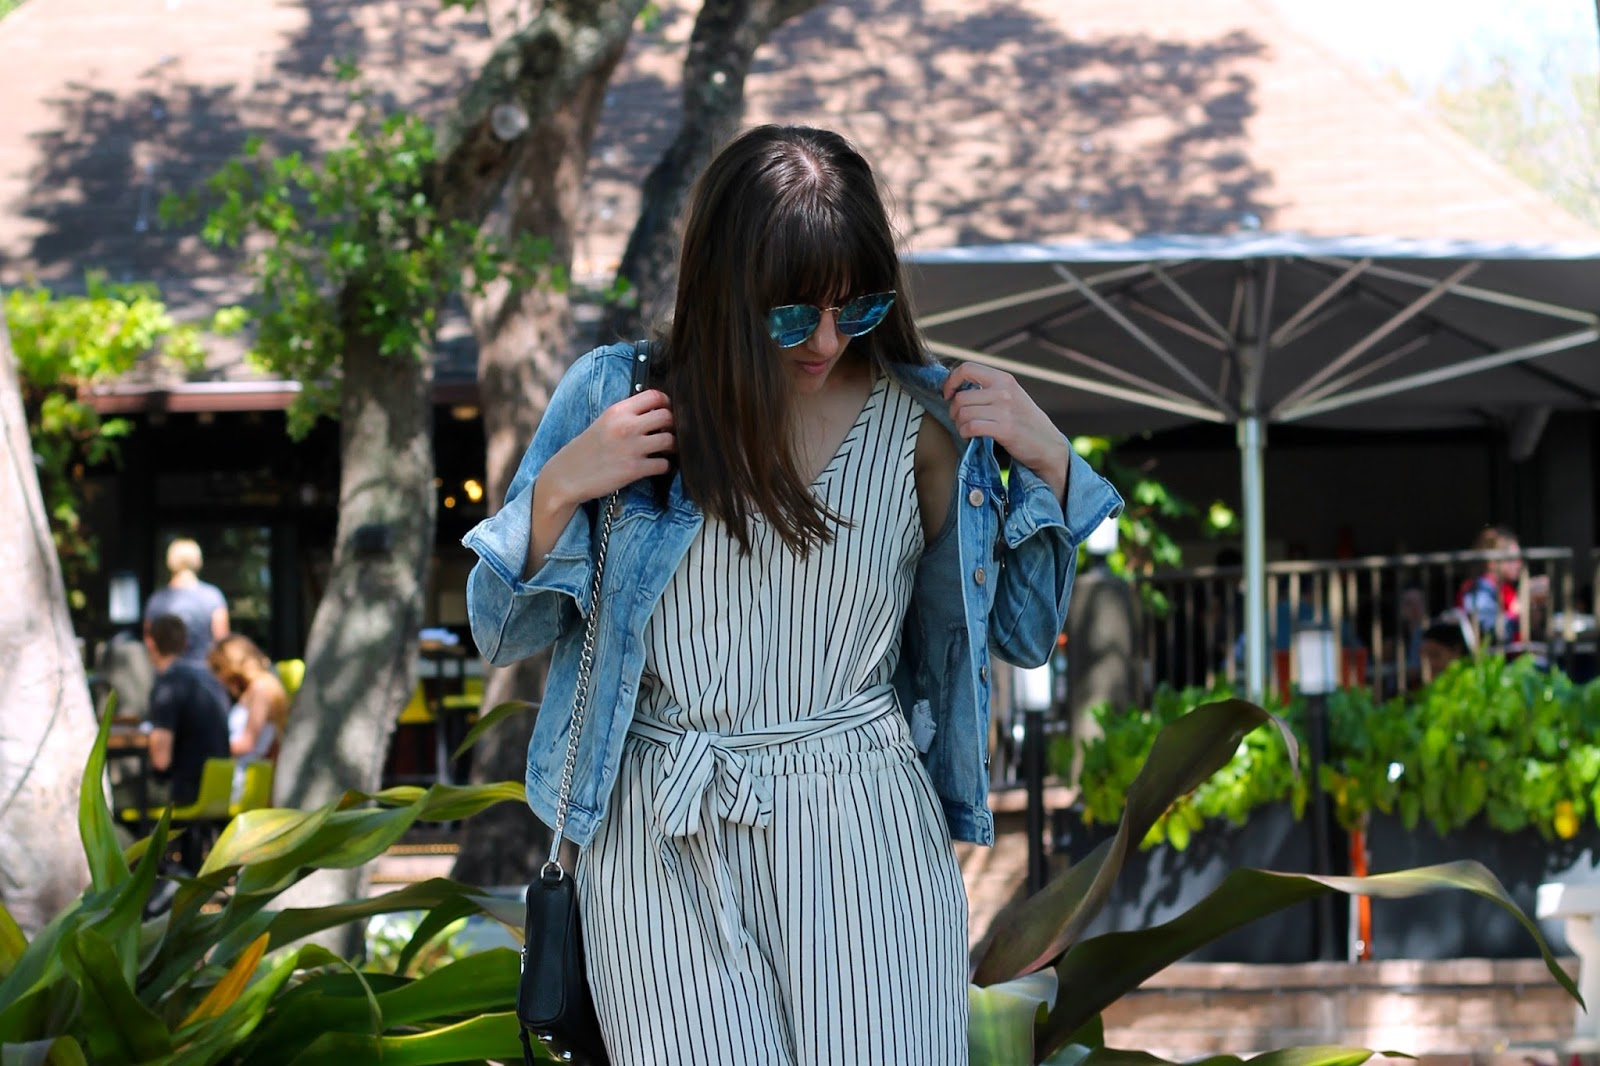 GAP, Forever 21, Quay Australia, Jeffrey Campbell, fashion blogger, fashion blog, Miami fashion blogger, style blogger, capsule wardrobe, minimalist blogger, minimalism, minimalist wardrobe, style blog, minimalist fashion